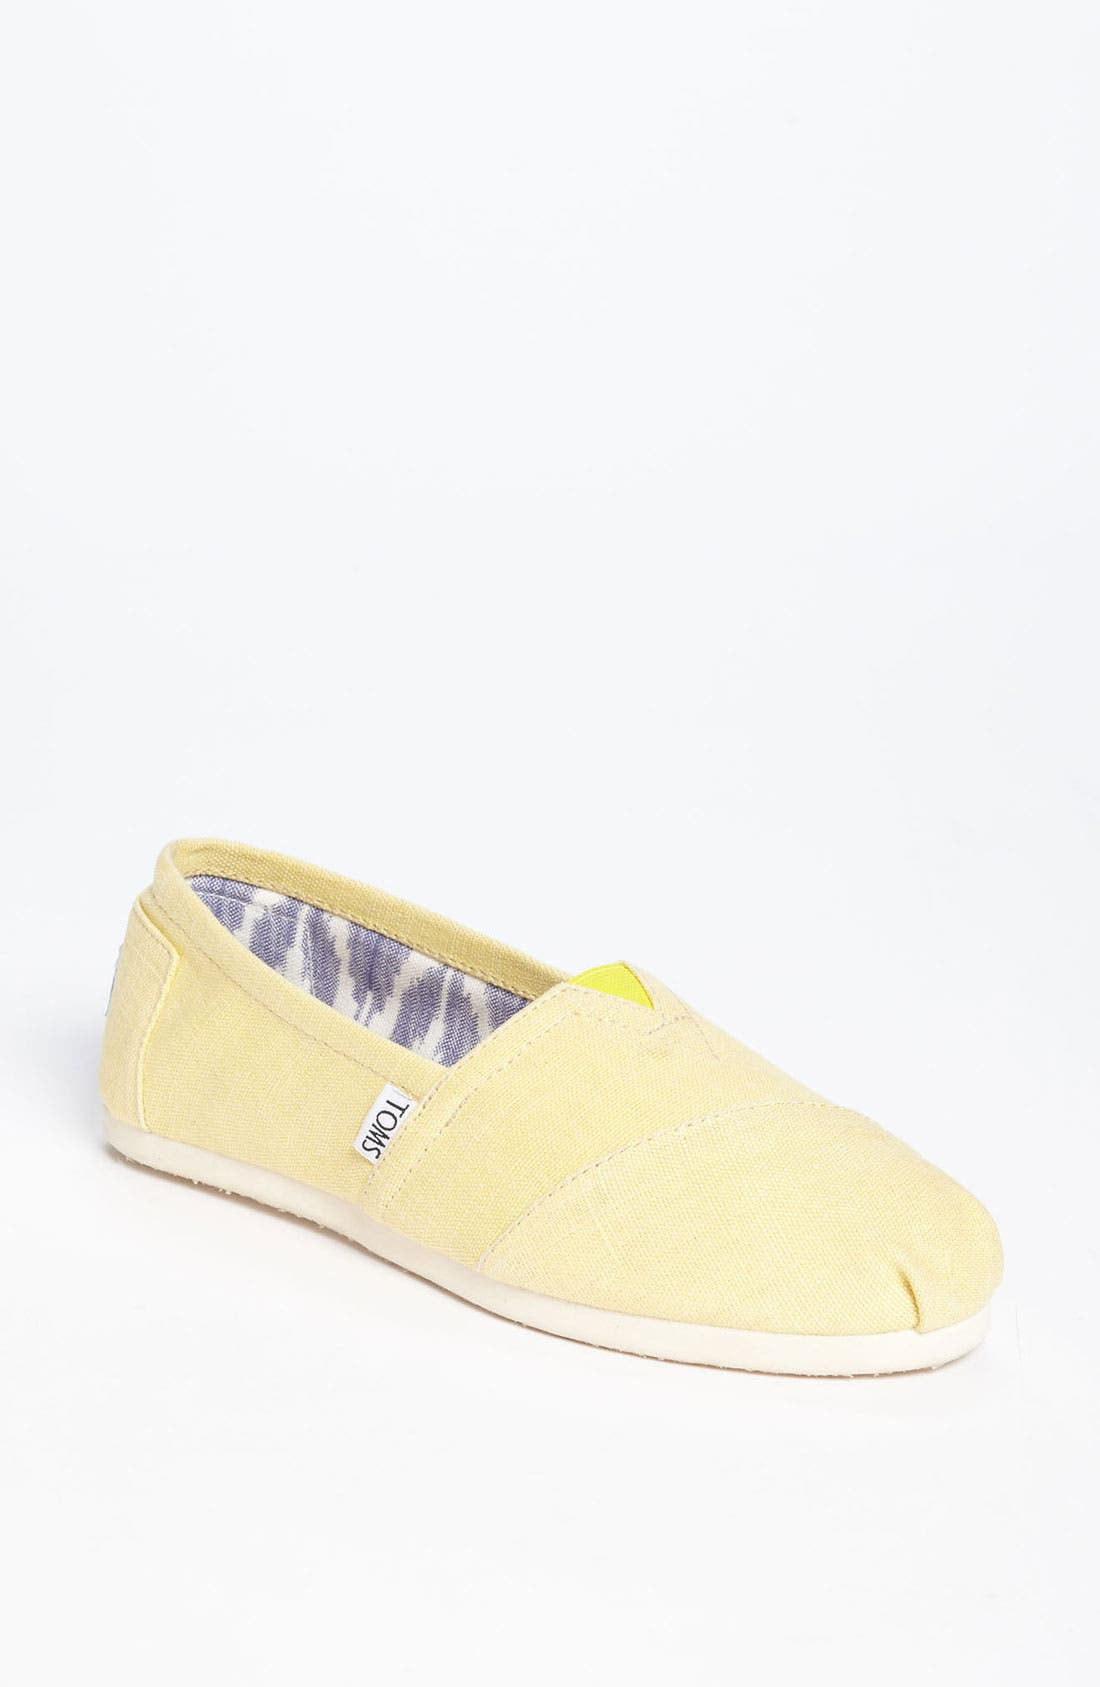 Main Image - TOMS 'Earthwise' Slip-On (Nordstrom Exclusive) (Women)